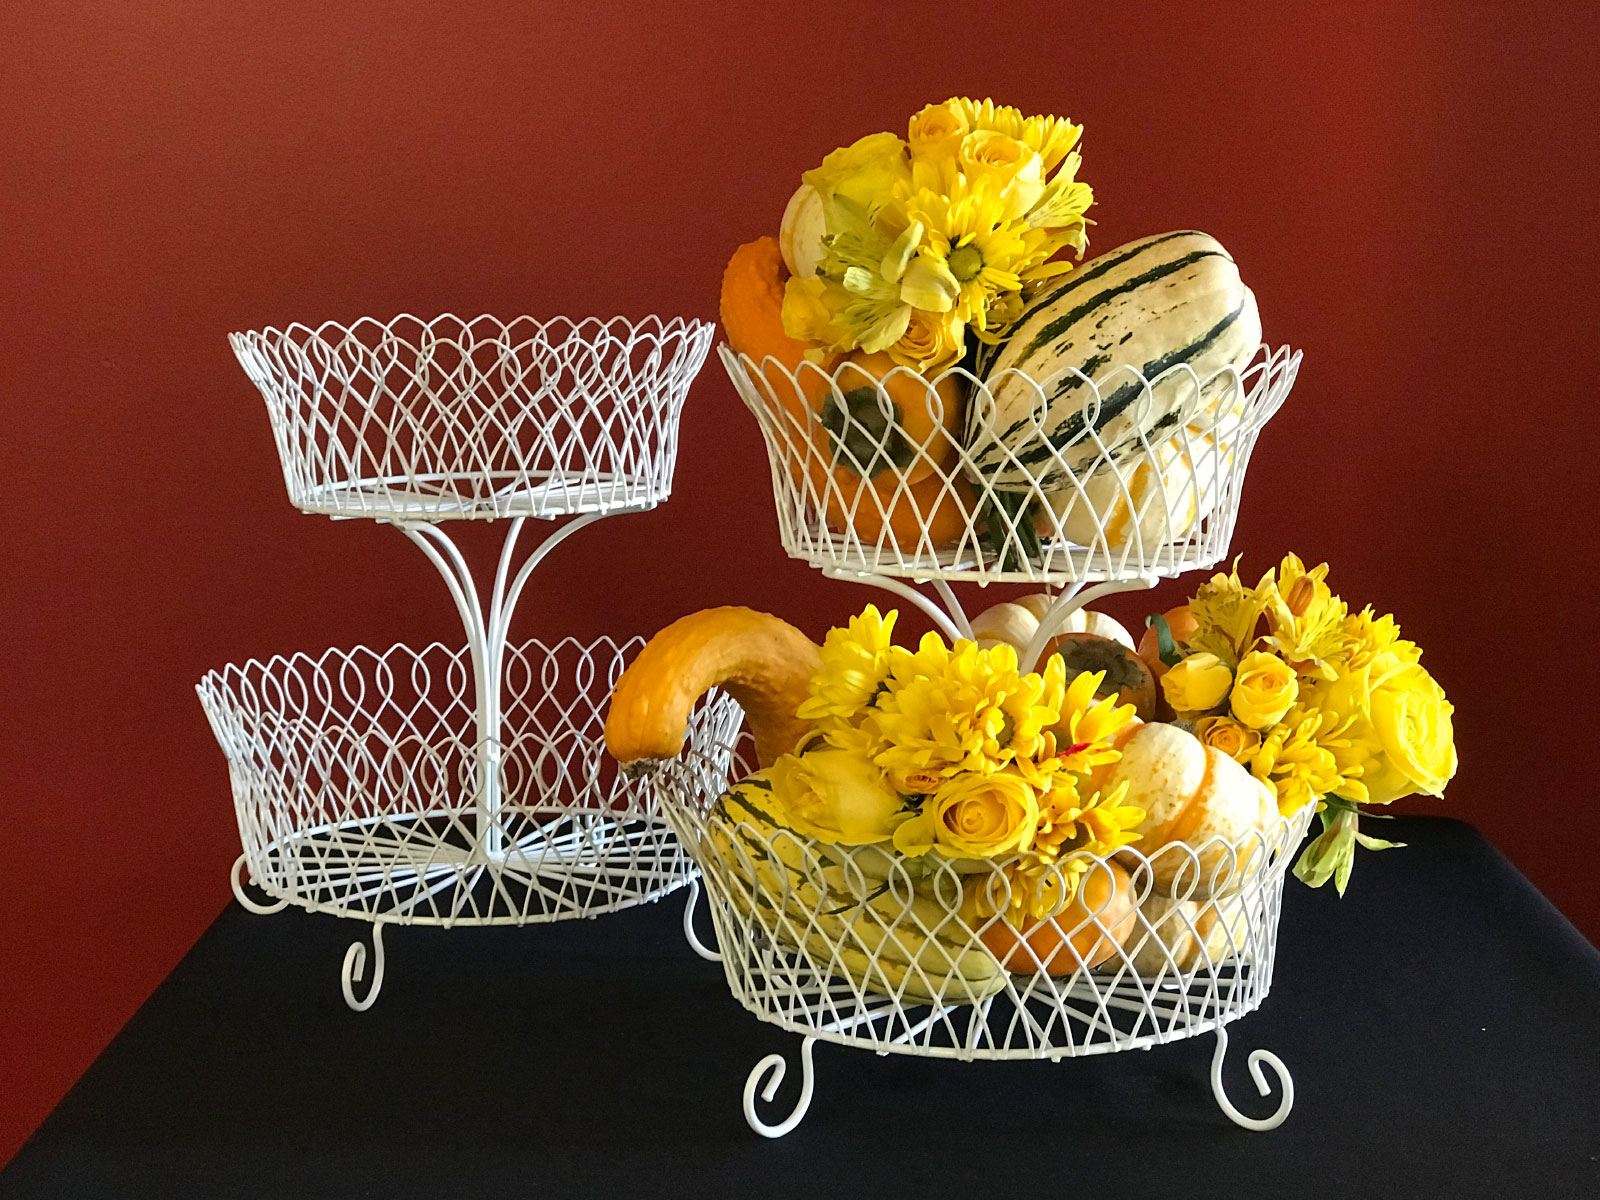 Several wax vegetable centerpieces including squash and pumpkins with flowers in white baskets